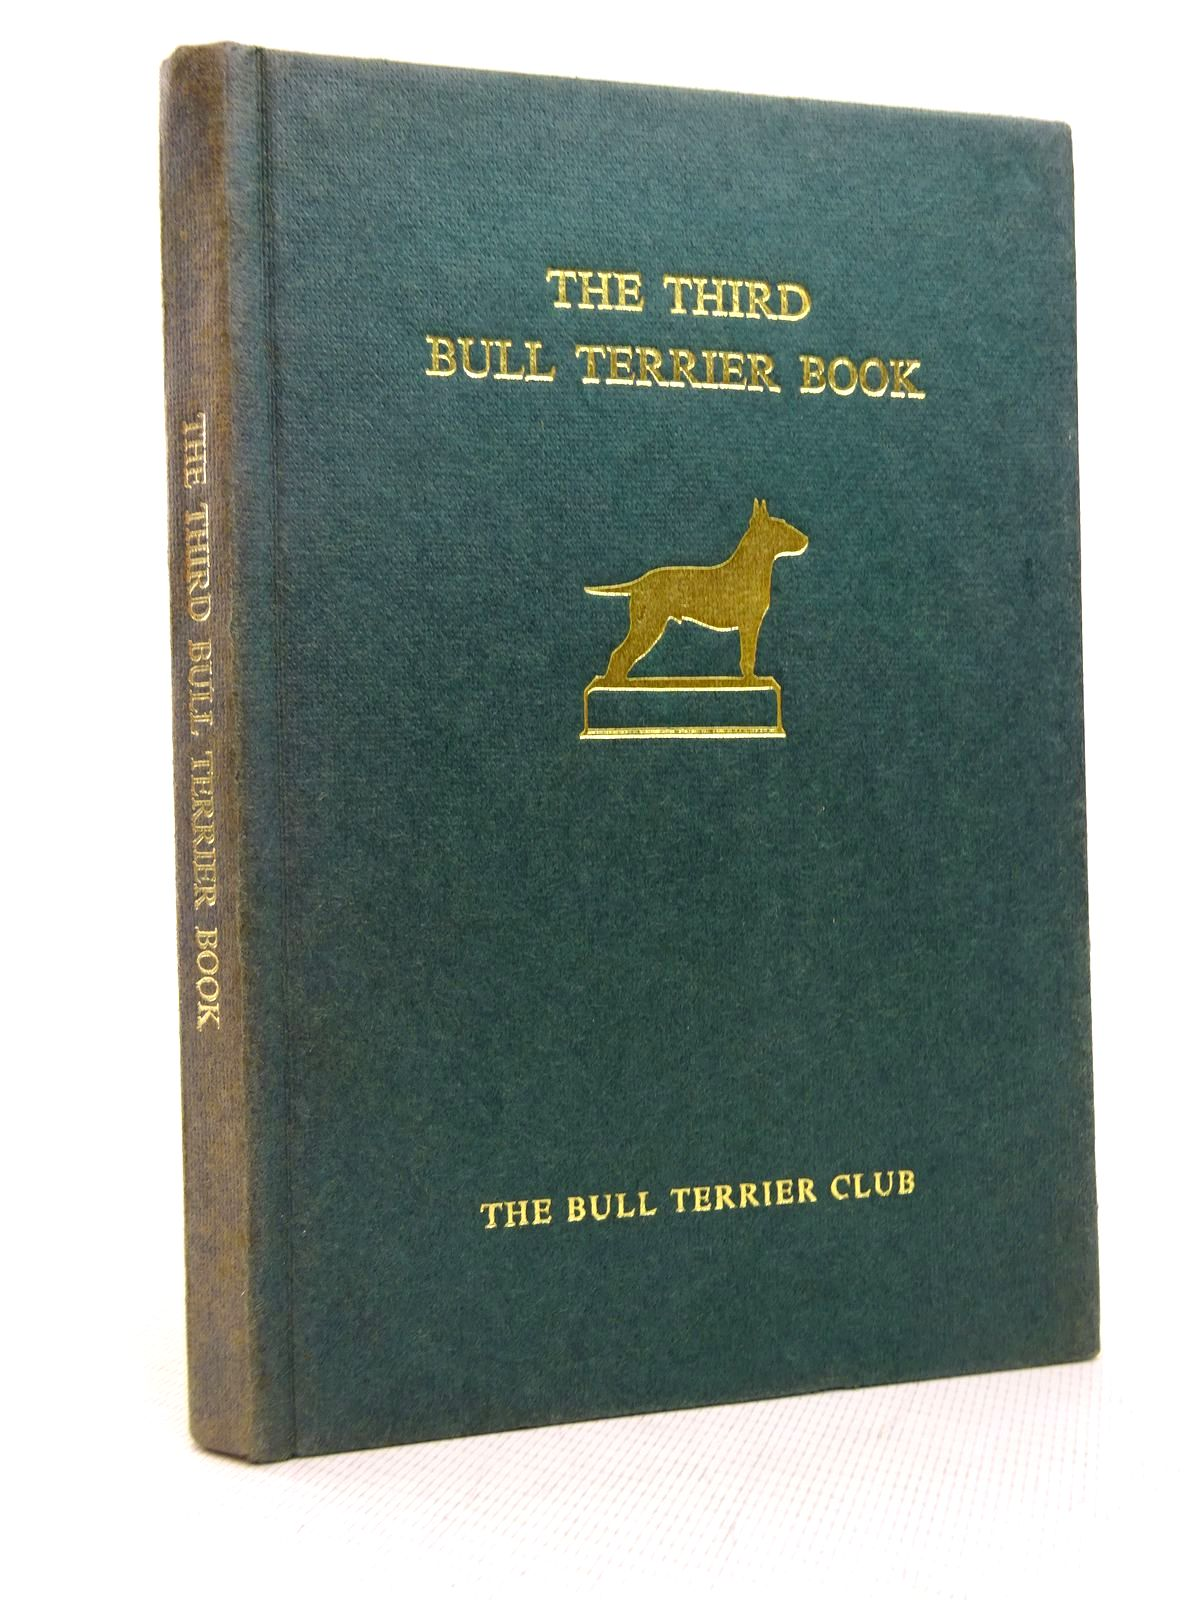 Photo of THE THIRD BULL TERRIER BOOK written by Sweeten, Margaret O. published by The Bull Terrier Club (STOCK CODE: 1816783)  for sale by Stella & Rose's Books